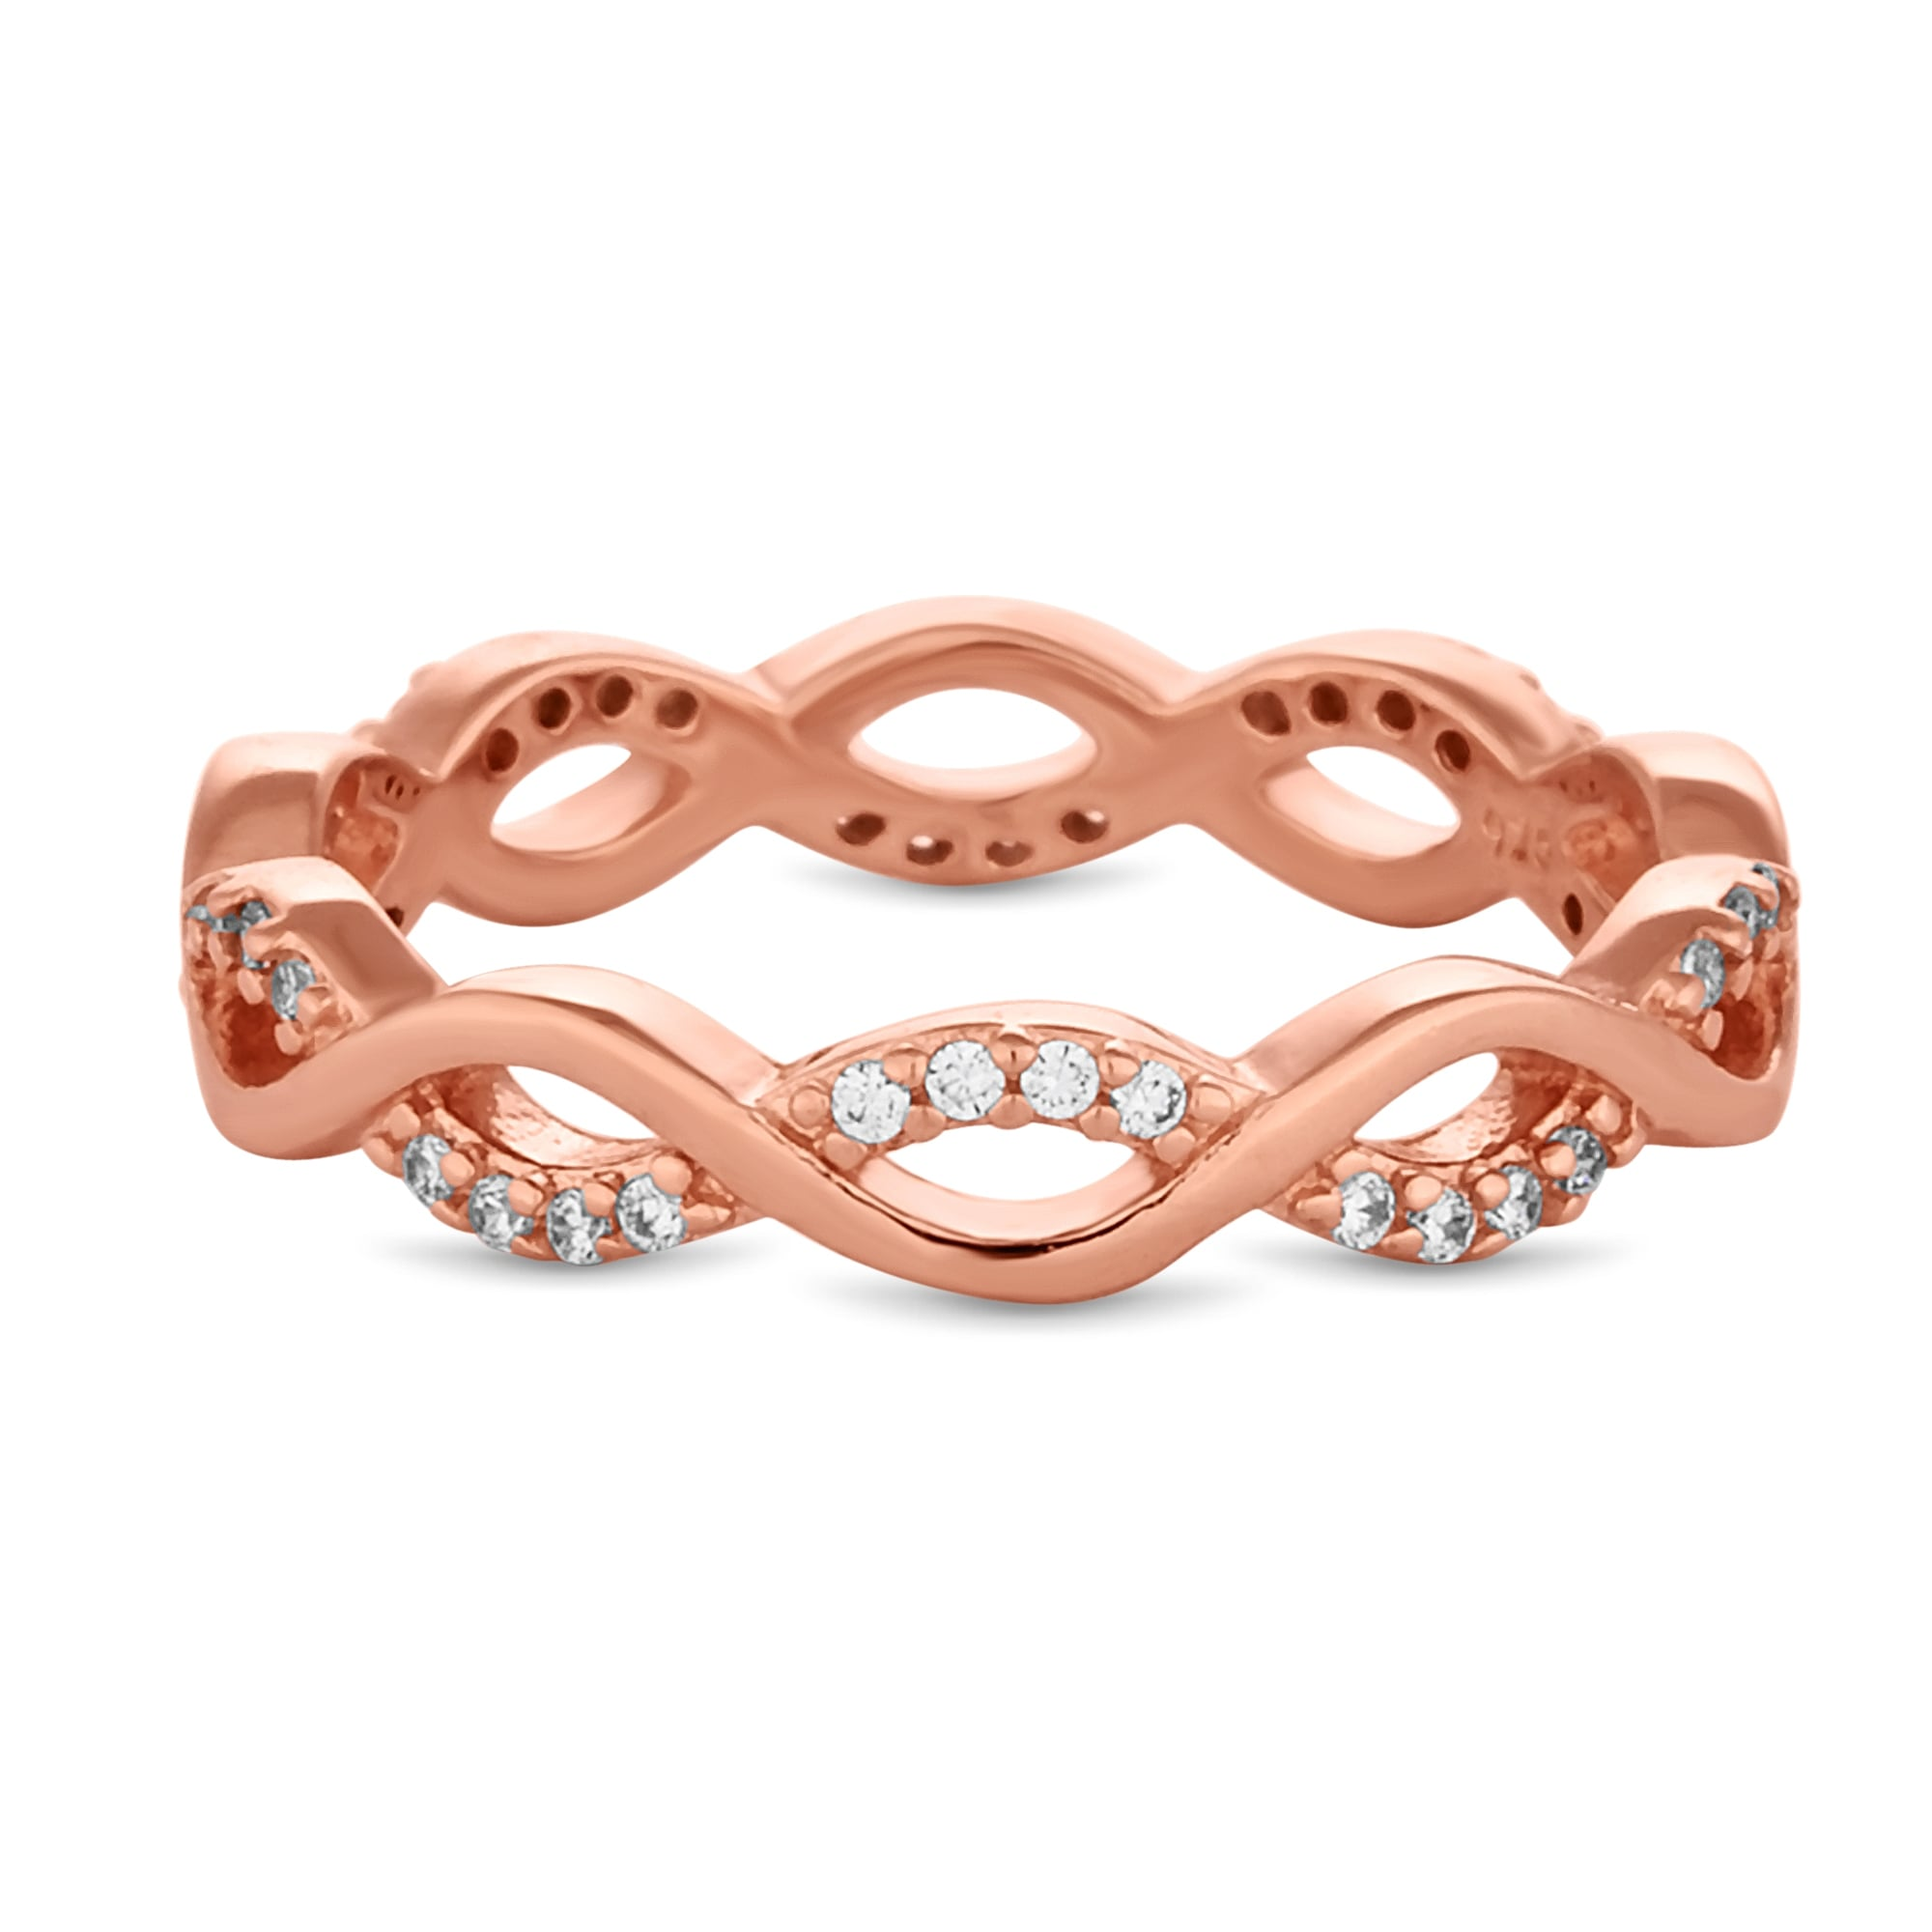 ring on luulla crystal detailed band bands rose color cute pin gold cz silver infinity heart in